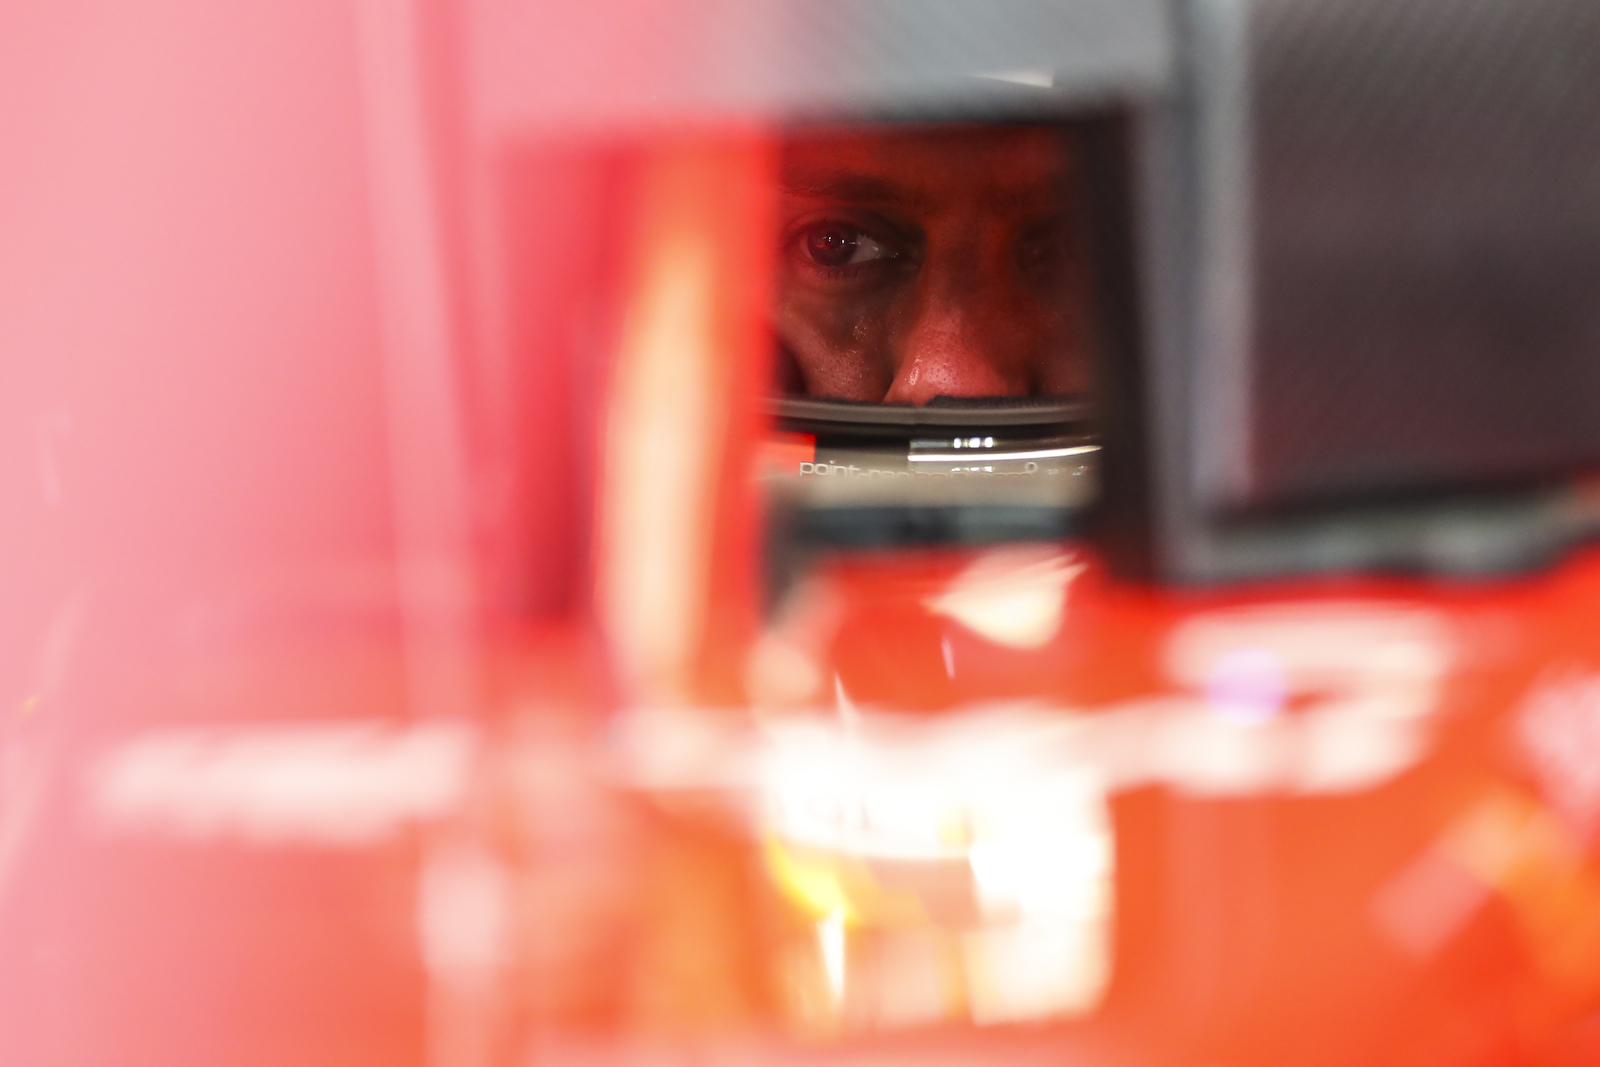 Ferrari driver Sebastian Vettel of Germany sits in his car during first practice at the Marina Bay City Circuit ahead of the Singapore Formula One Grand Prix in Singapore, Sunday, Sept. 14, 2018. (AP Photo/Yong Teck Lim)